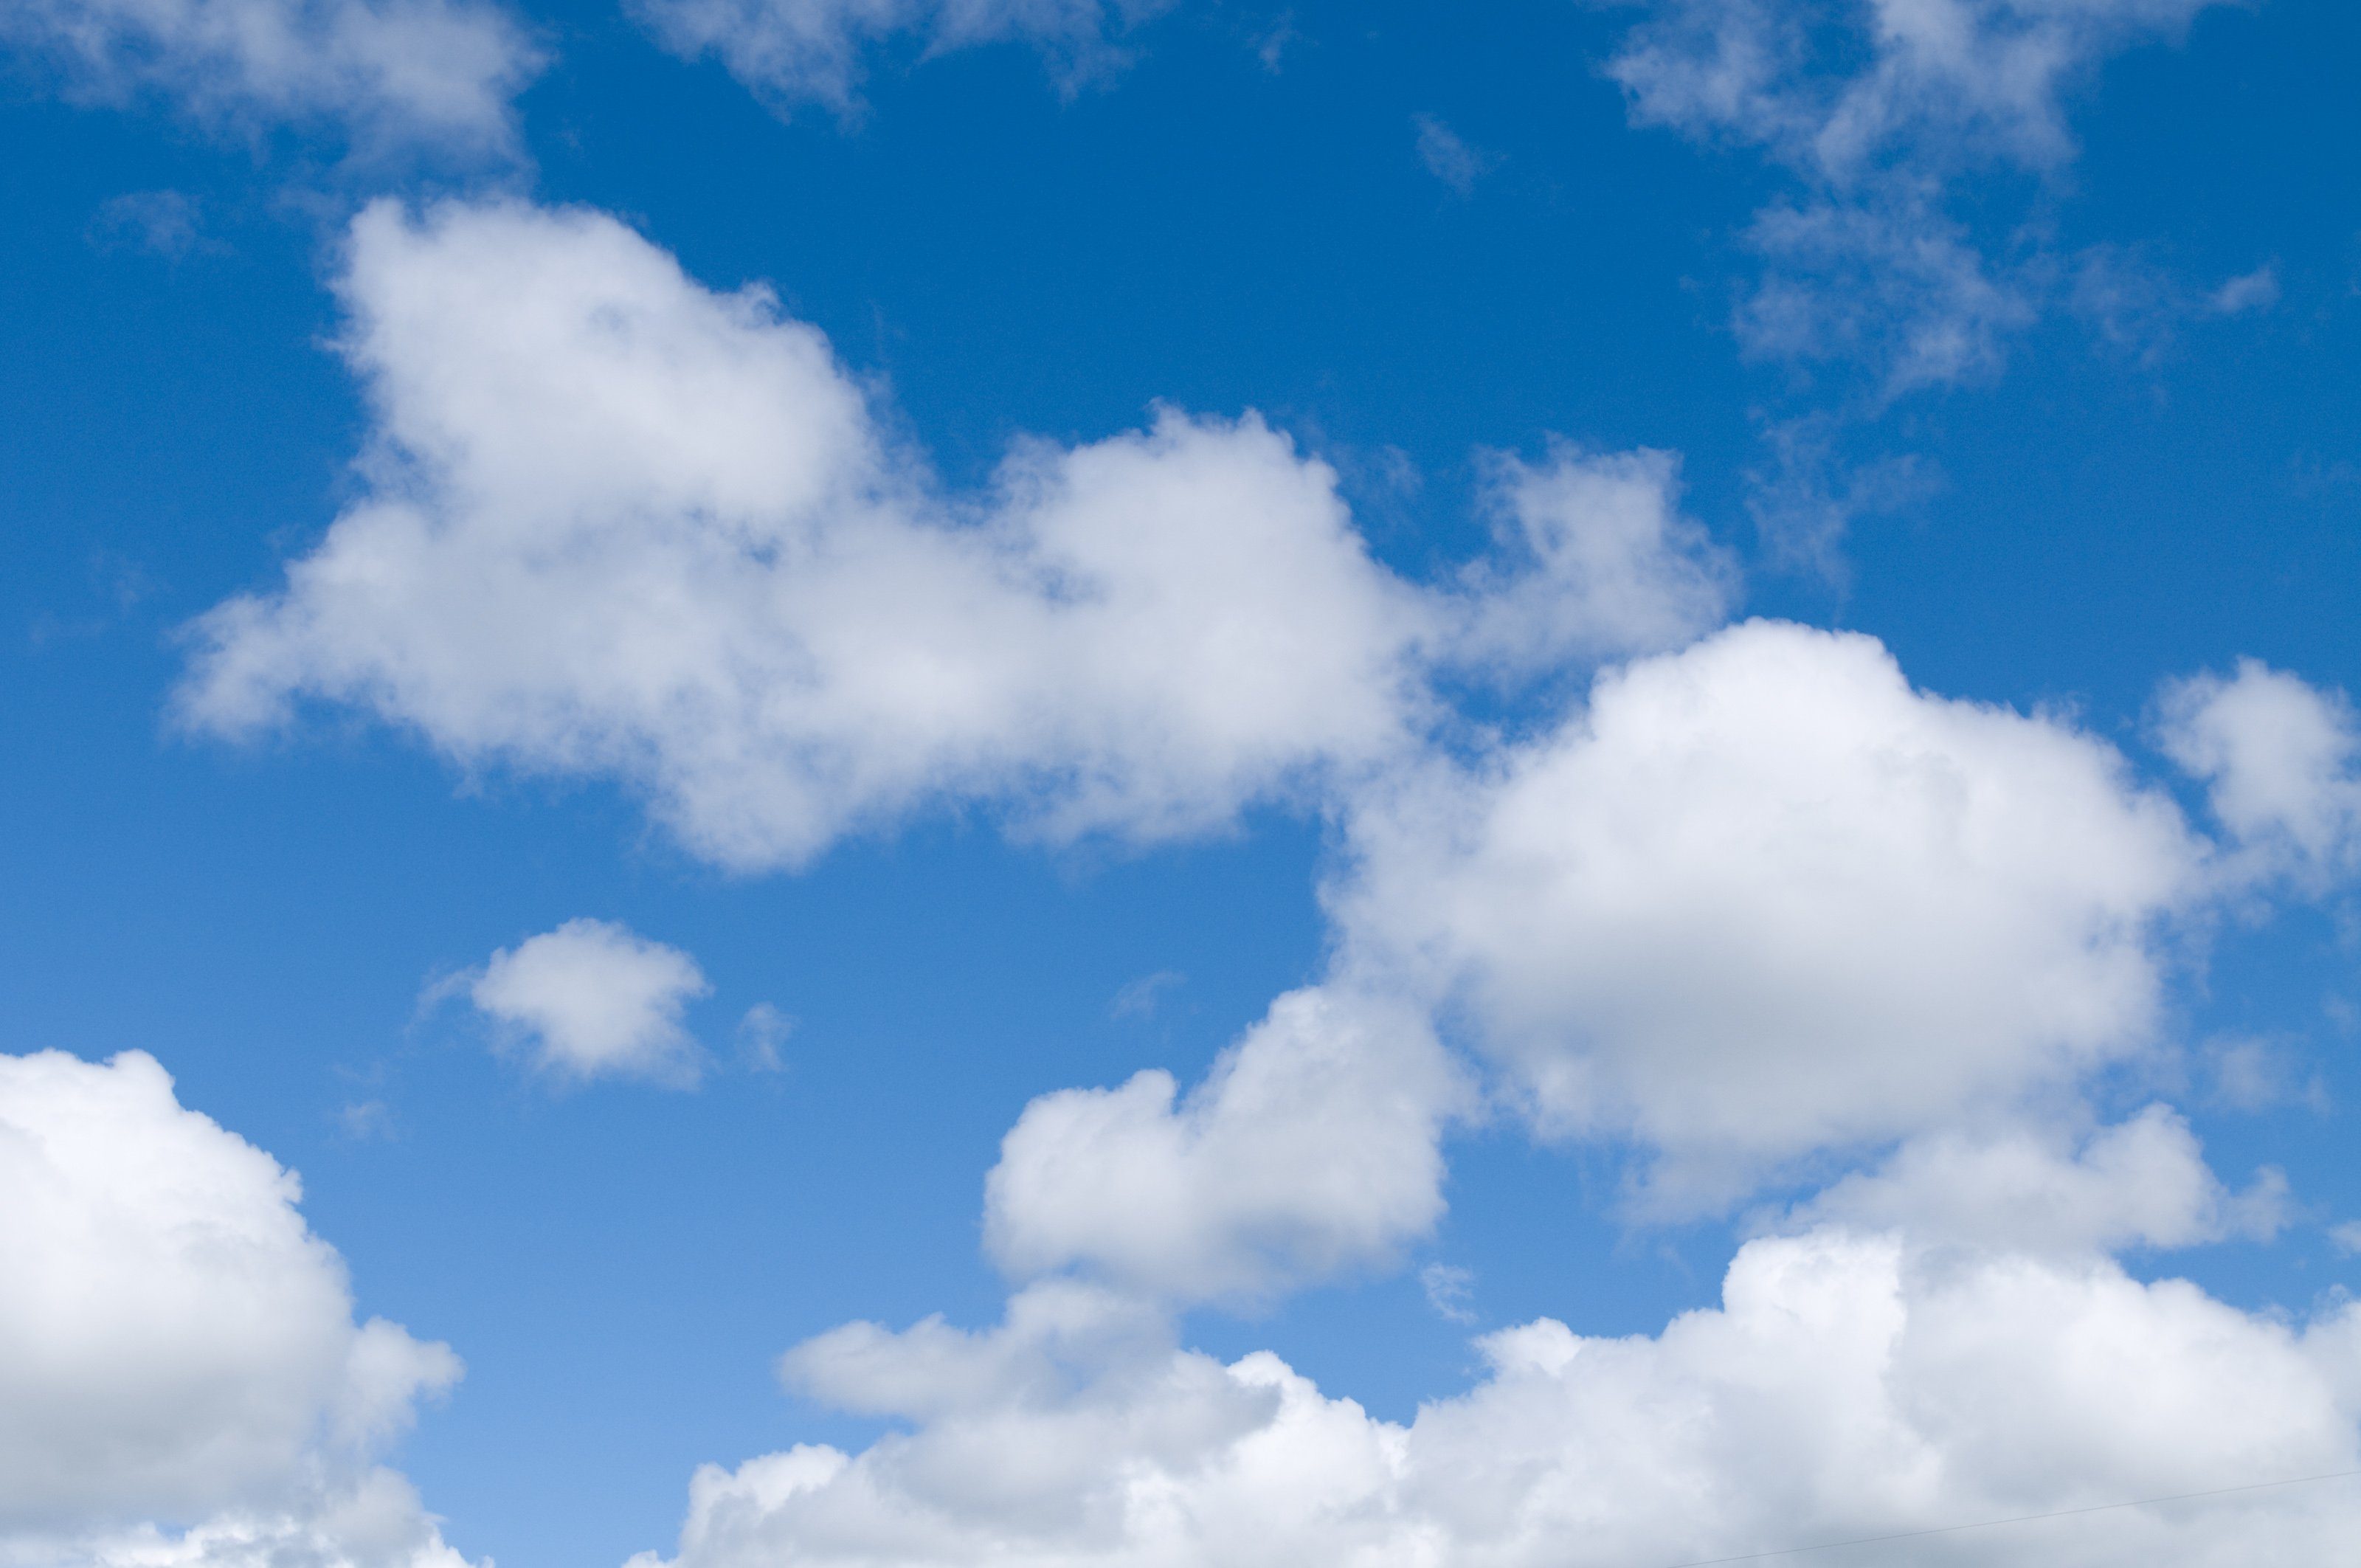 Blue Sky Clouds Wallpapers and Images 3200x2125